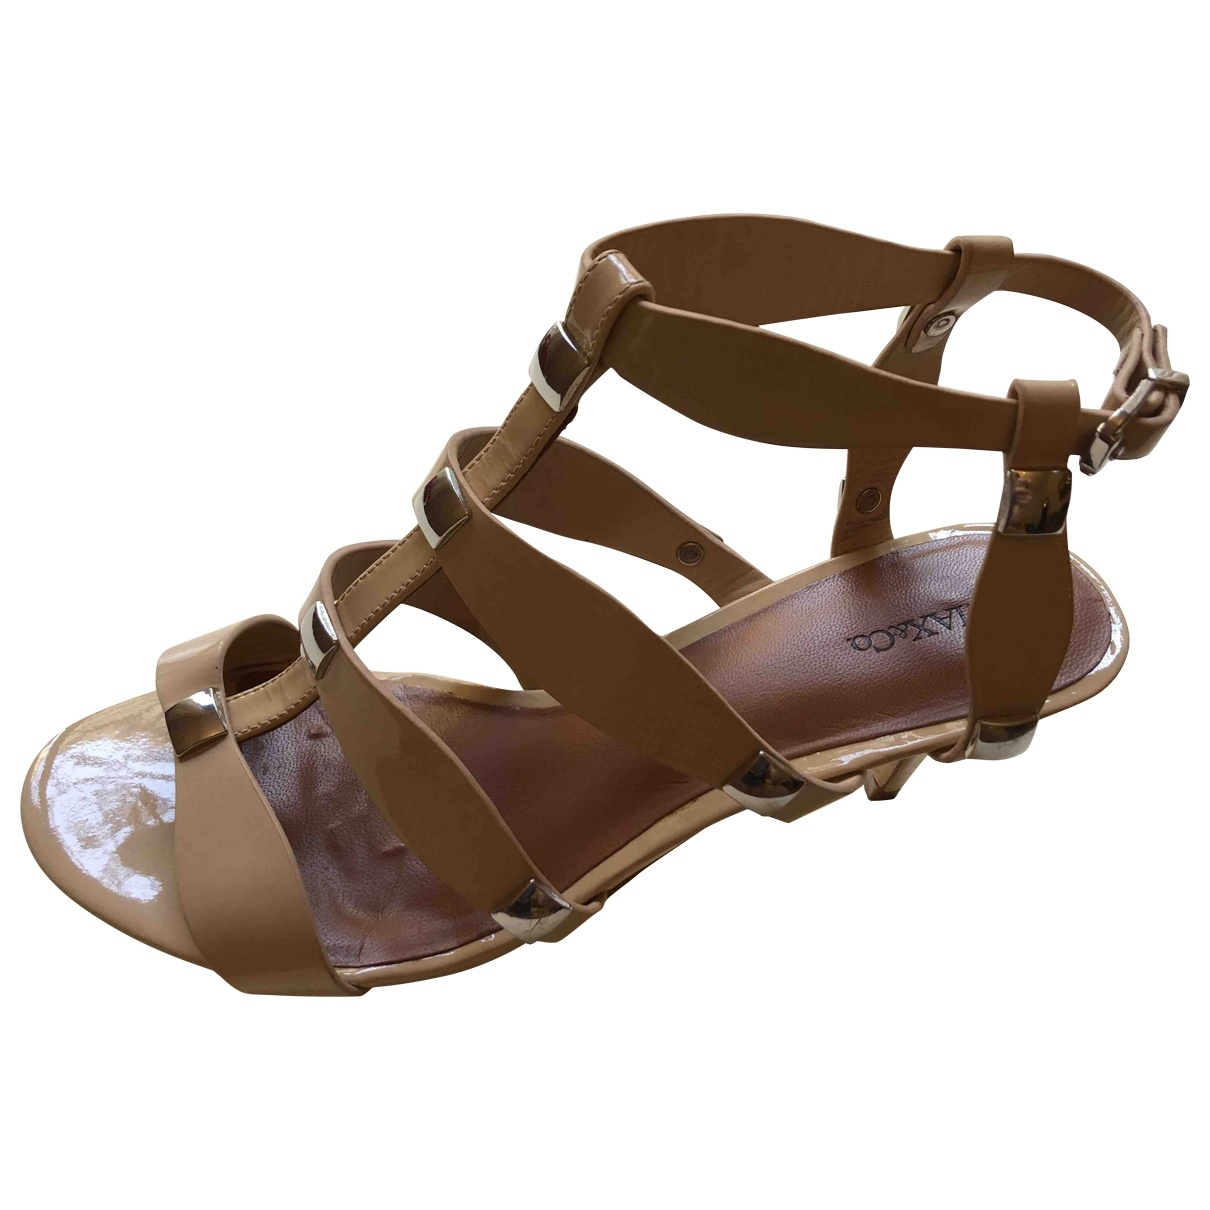 Max & Co \N Beige Patent leather Sandals for Women 37 EU